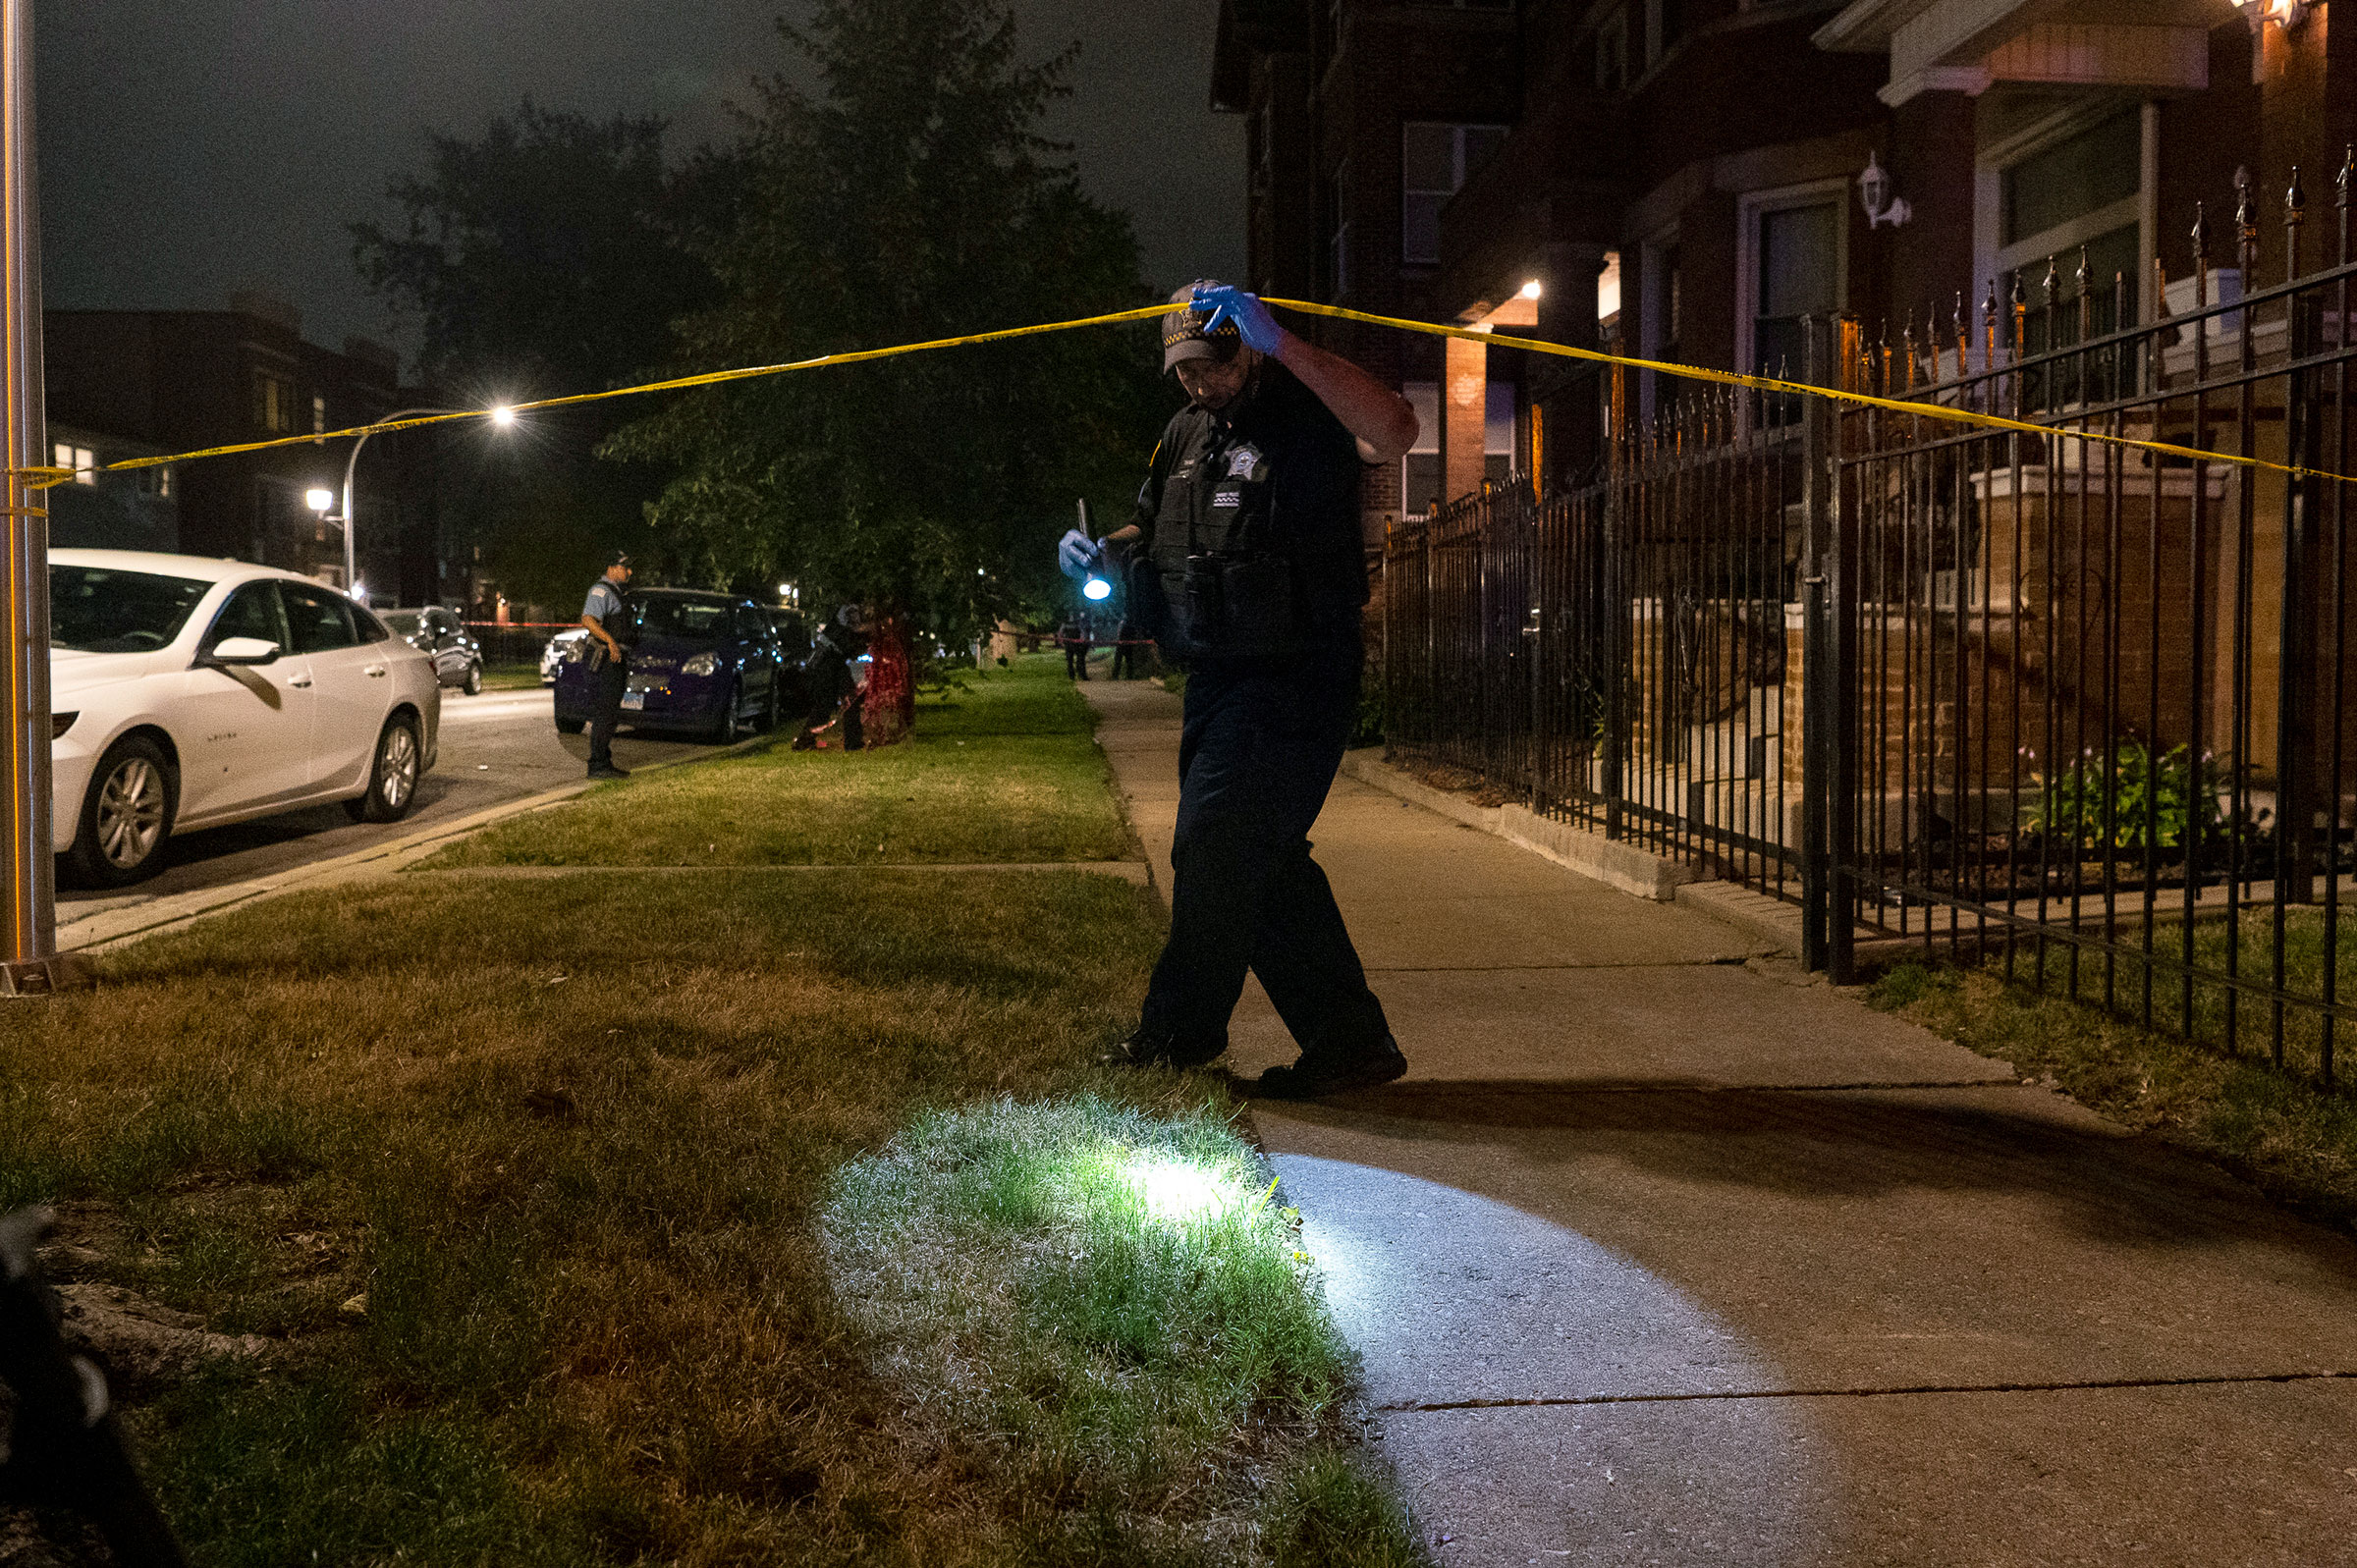 Chicago police at the scene of a shooting in the Woodlawn neighborhood of Chicago, Friday, Sept. 3, 2021. A 4-year-old boy was shot twice when bullets came through the front window of a home, Chicago Police said.